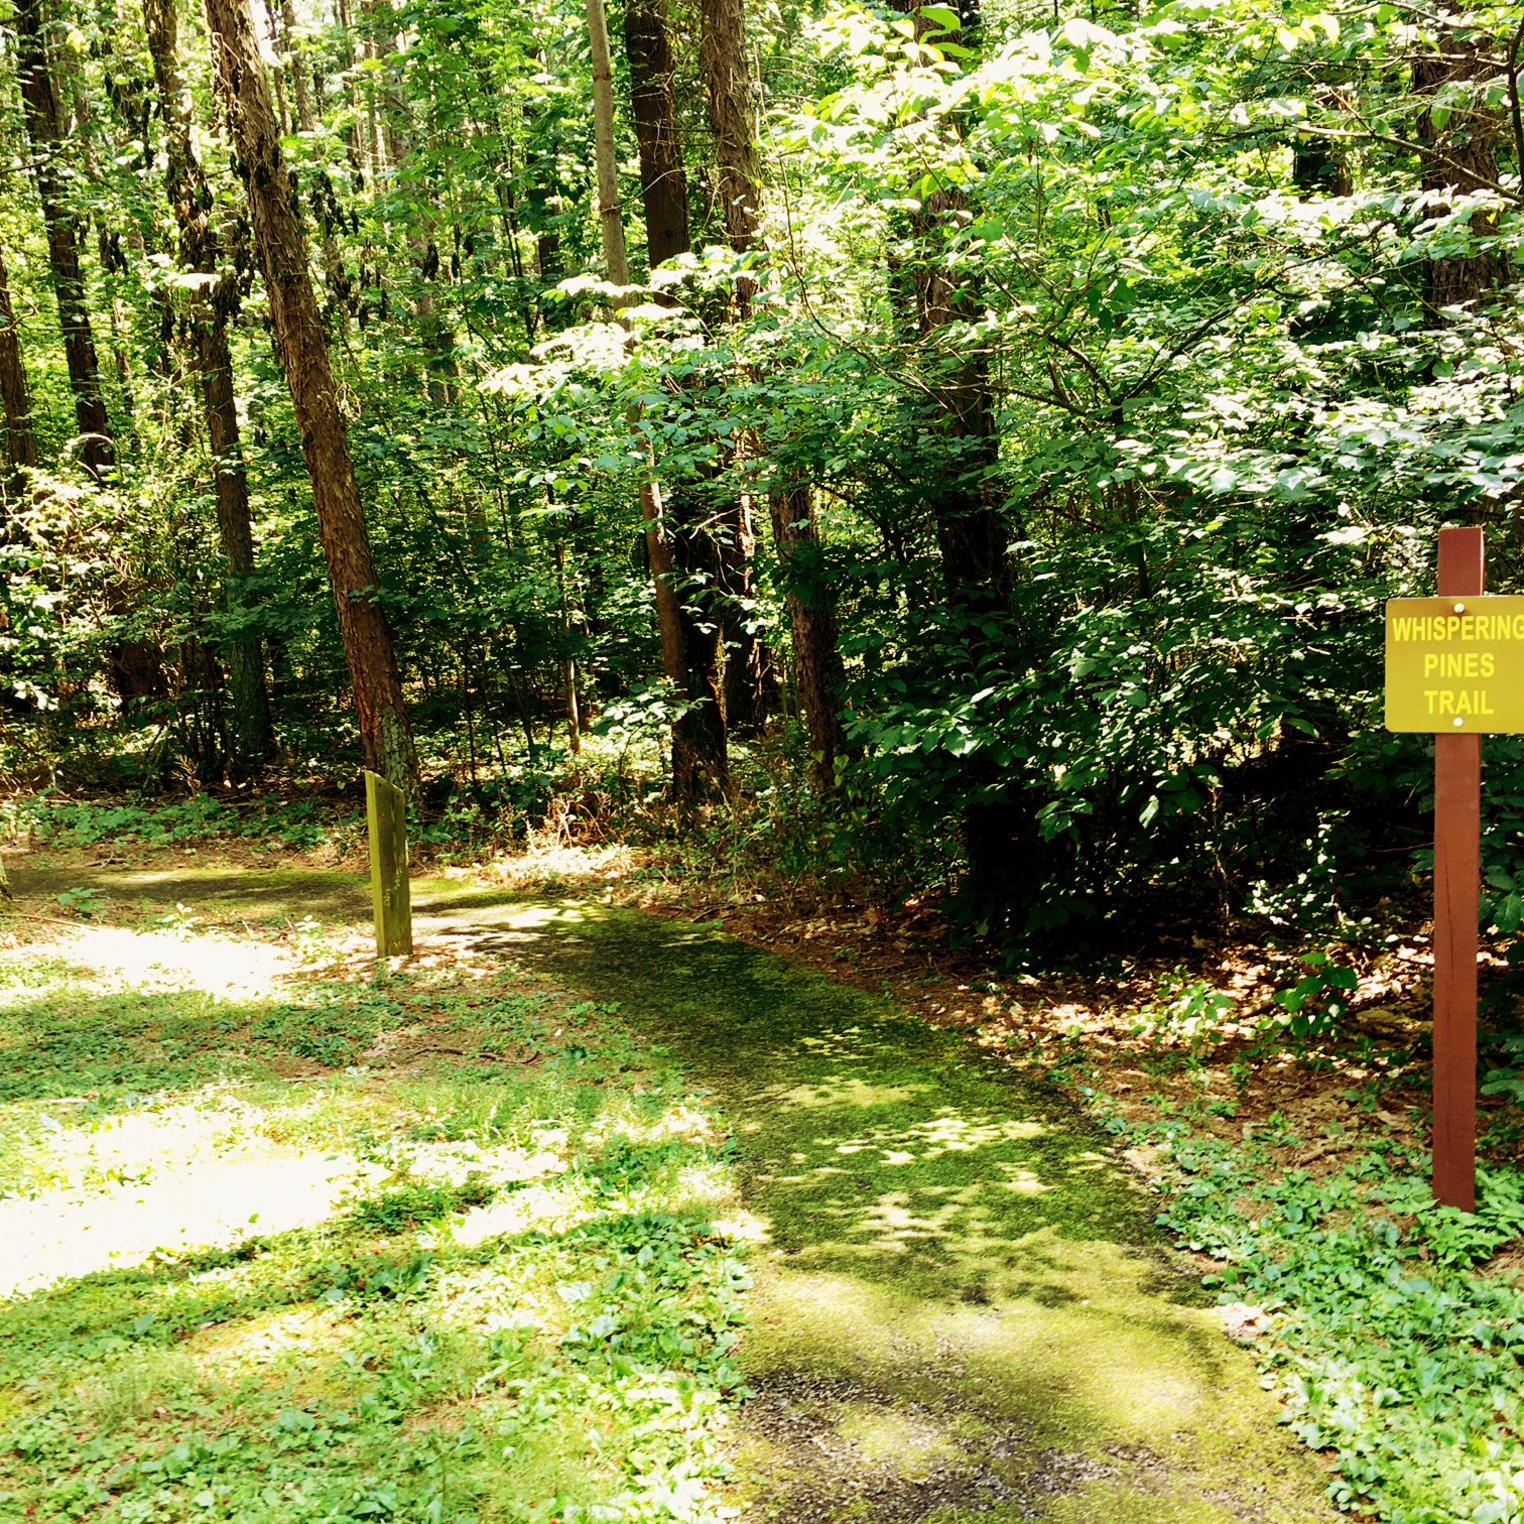 Whispering Pines Trail at Kings Gap